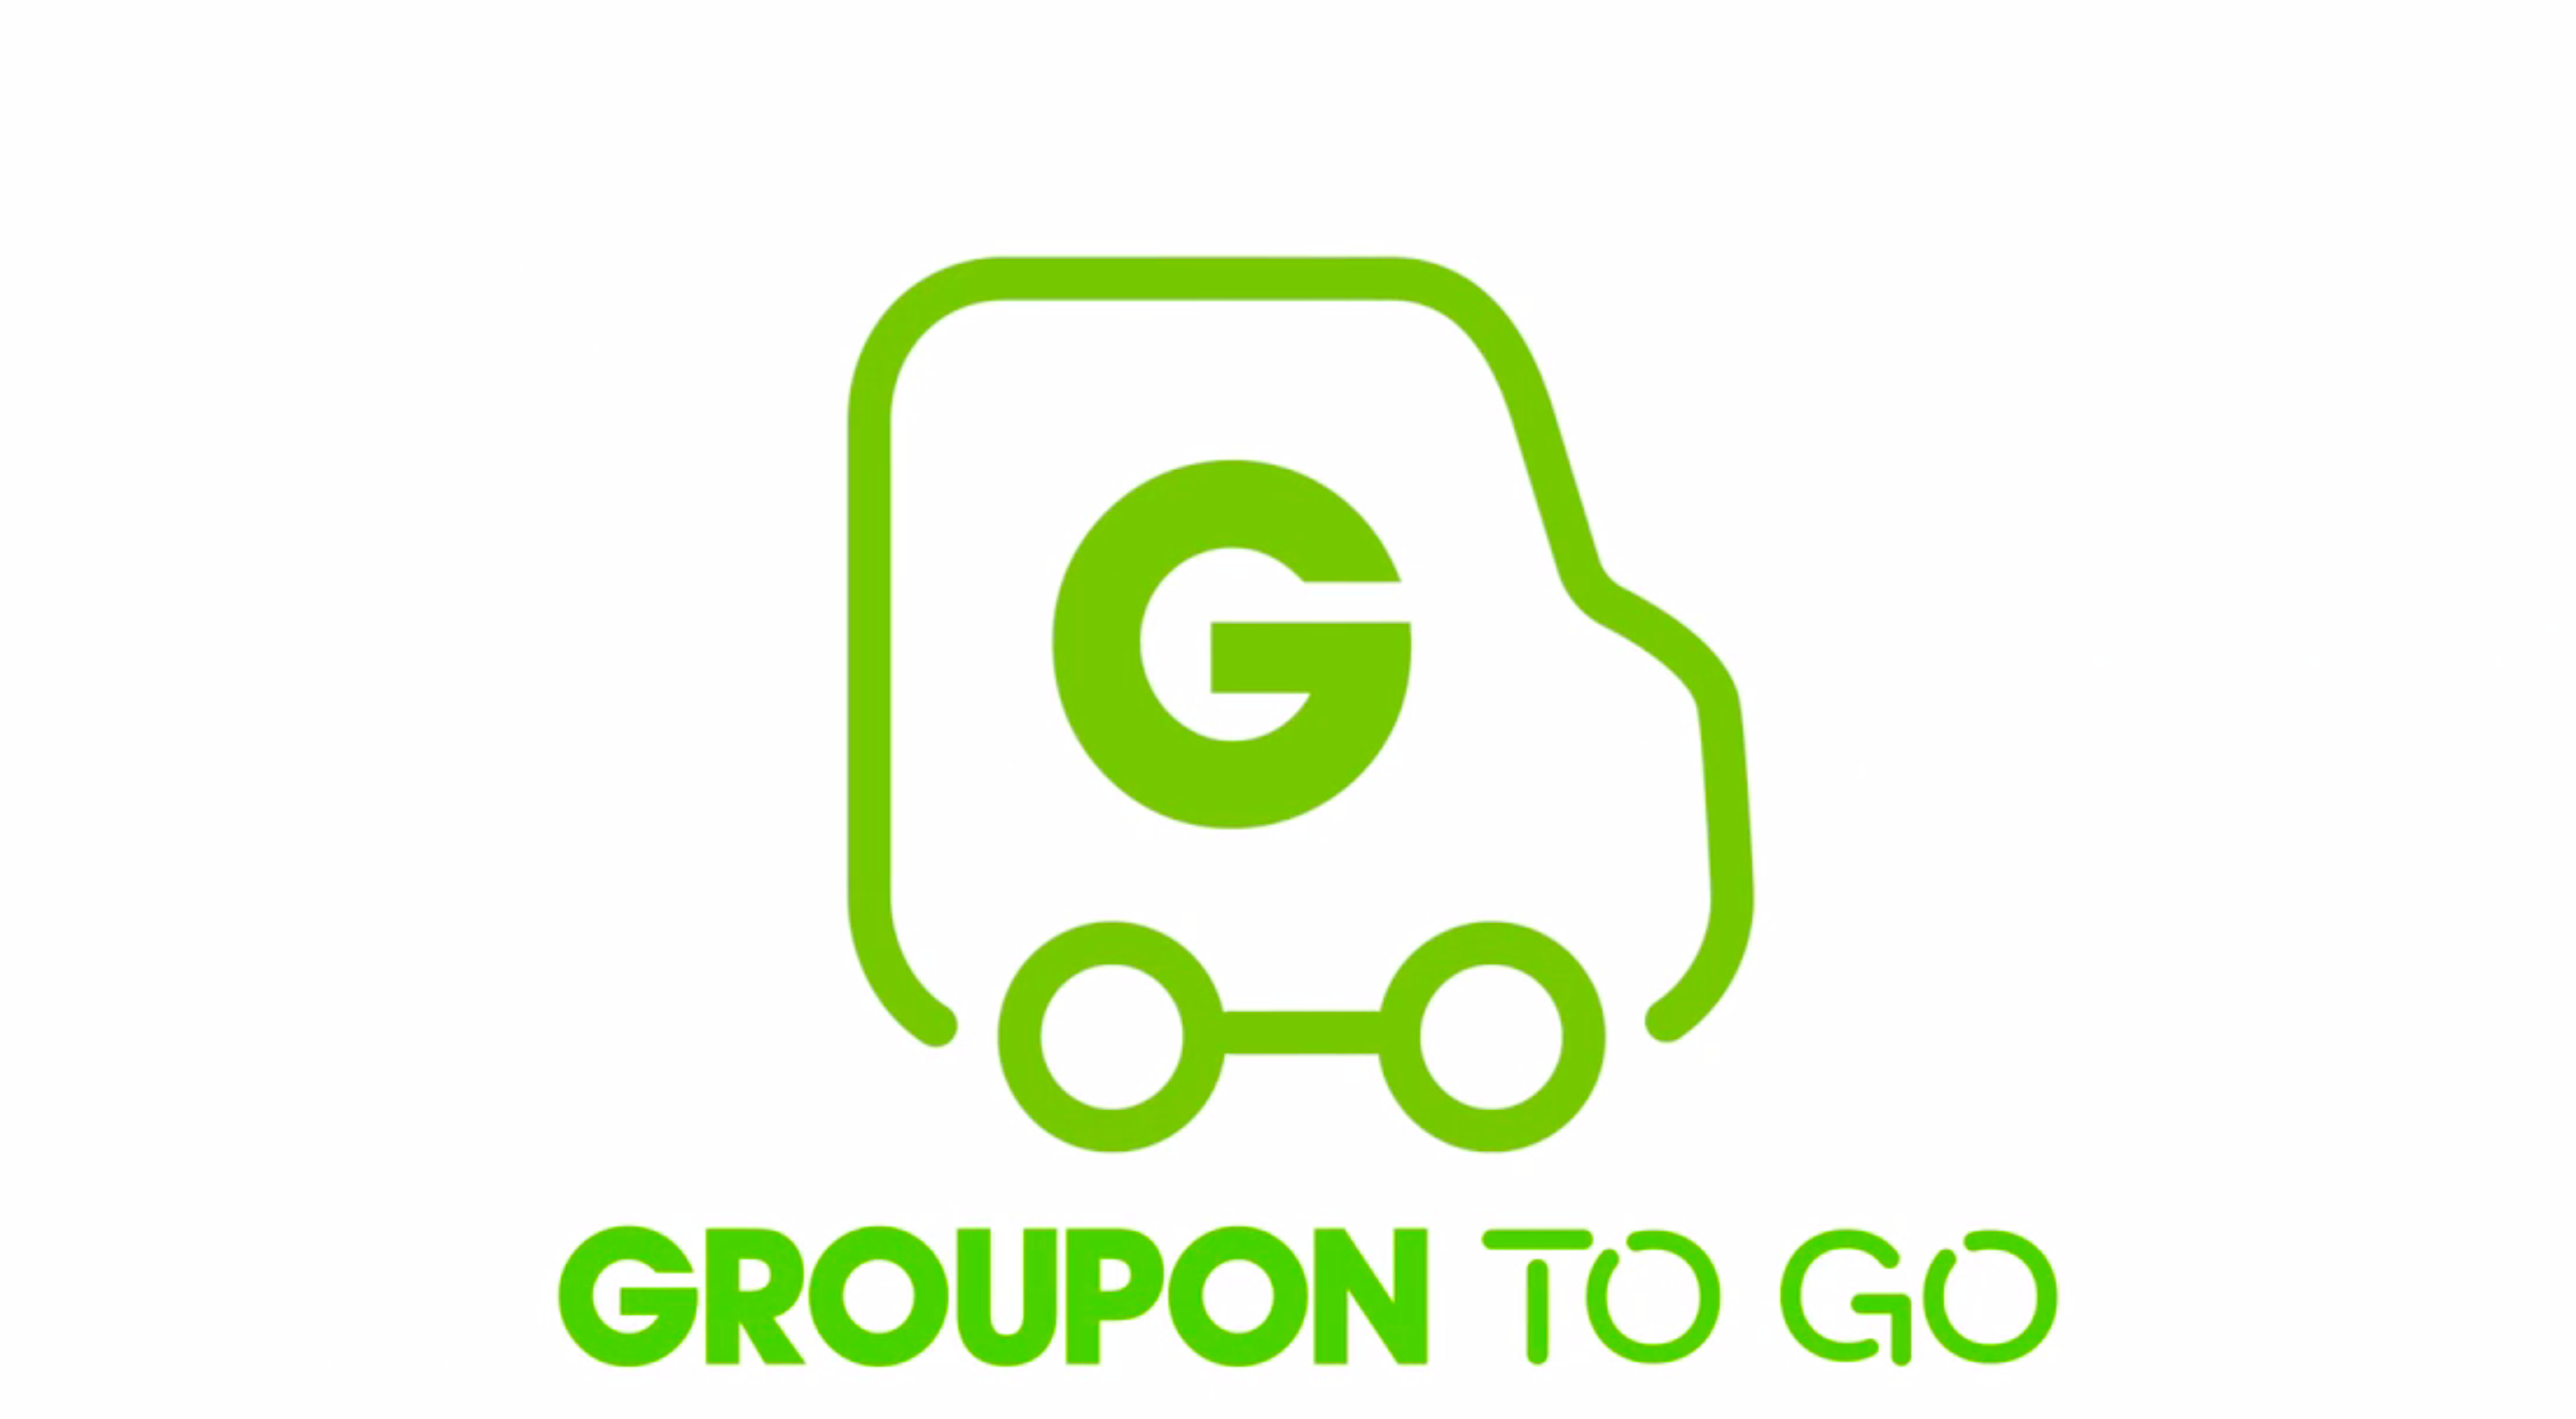 Groupon to go is a new online food delivery service for Cuisine to go